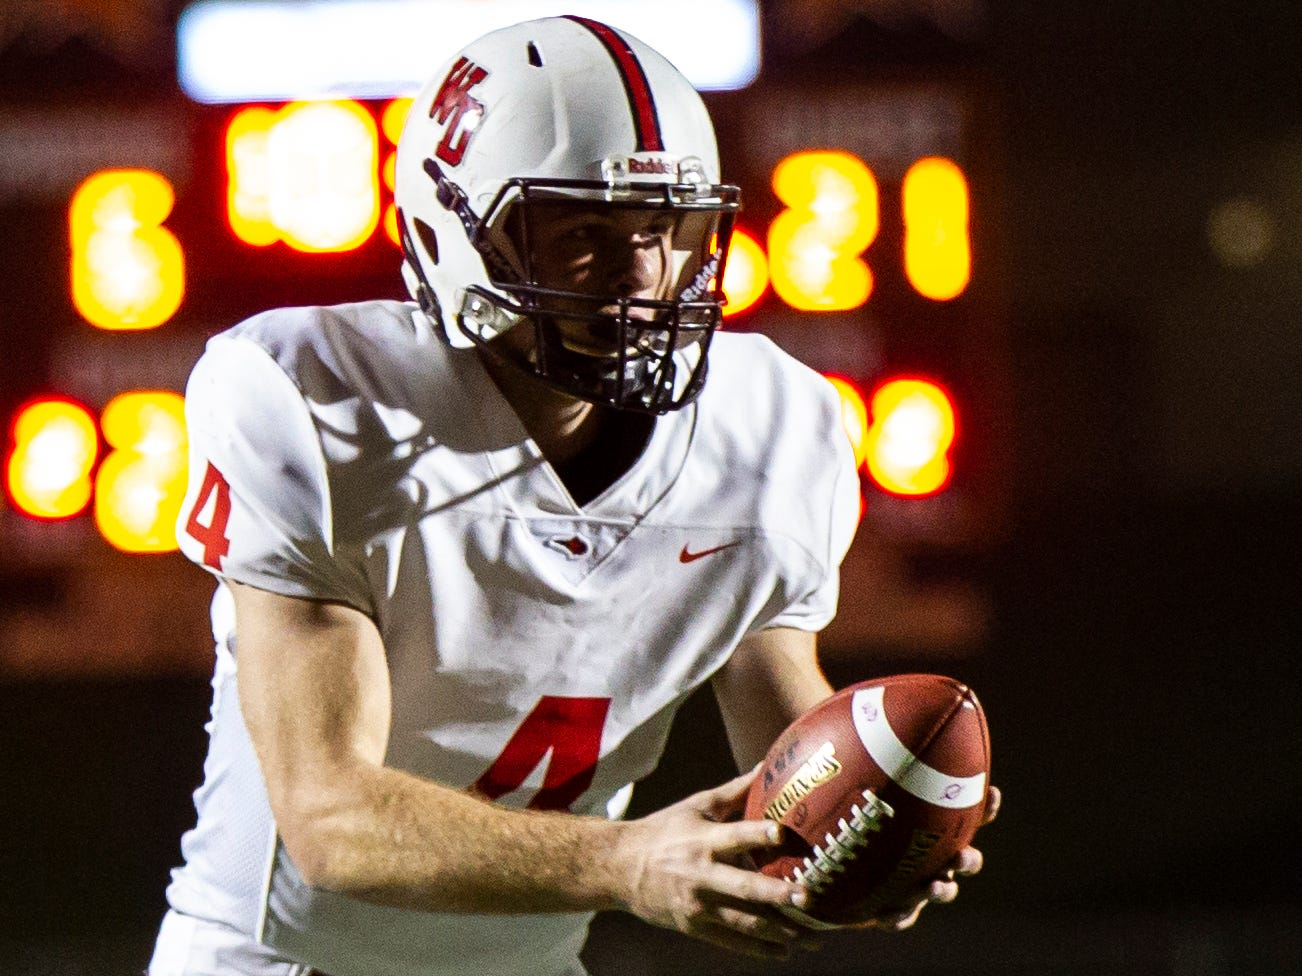 Western Dubuque's Calvin Harris (4) hands the ball off during a Class 3A varsity first round playoff football game on Friday, Oct. 26, 2018, at Spartan Stadium in Solon, Iowa.